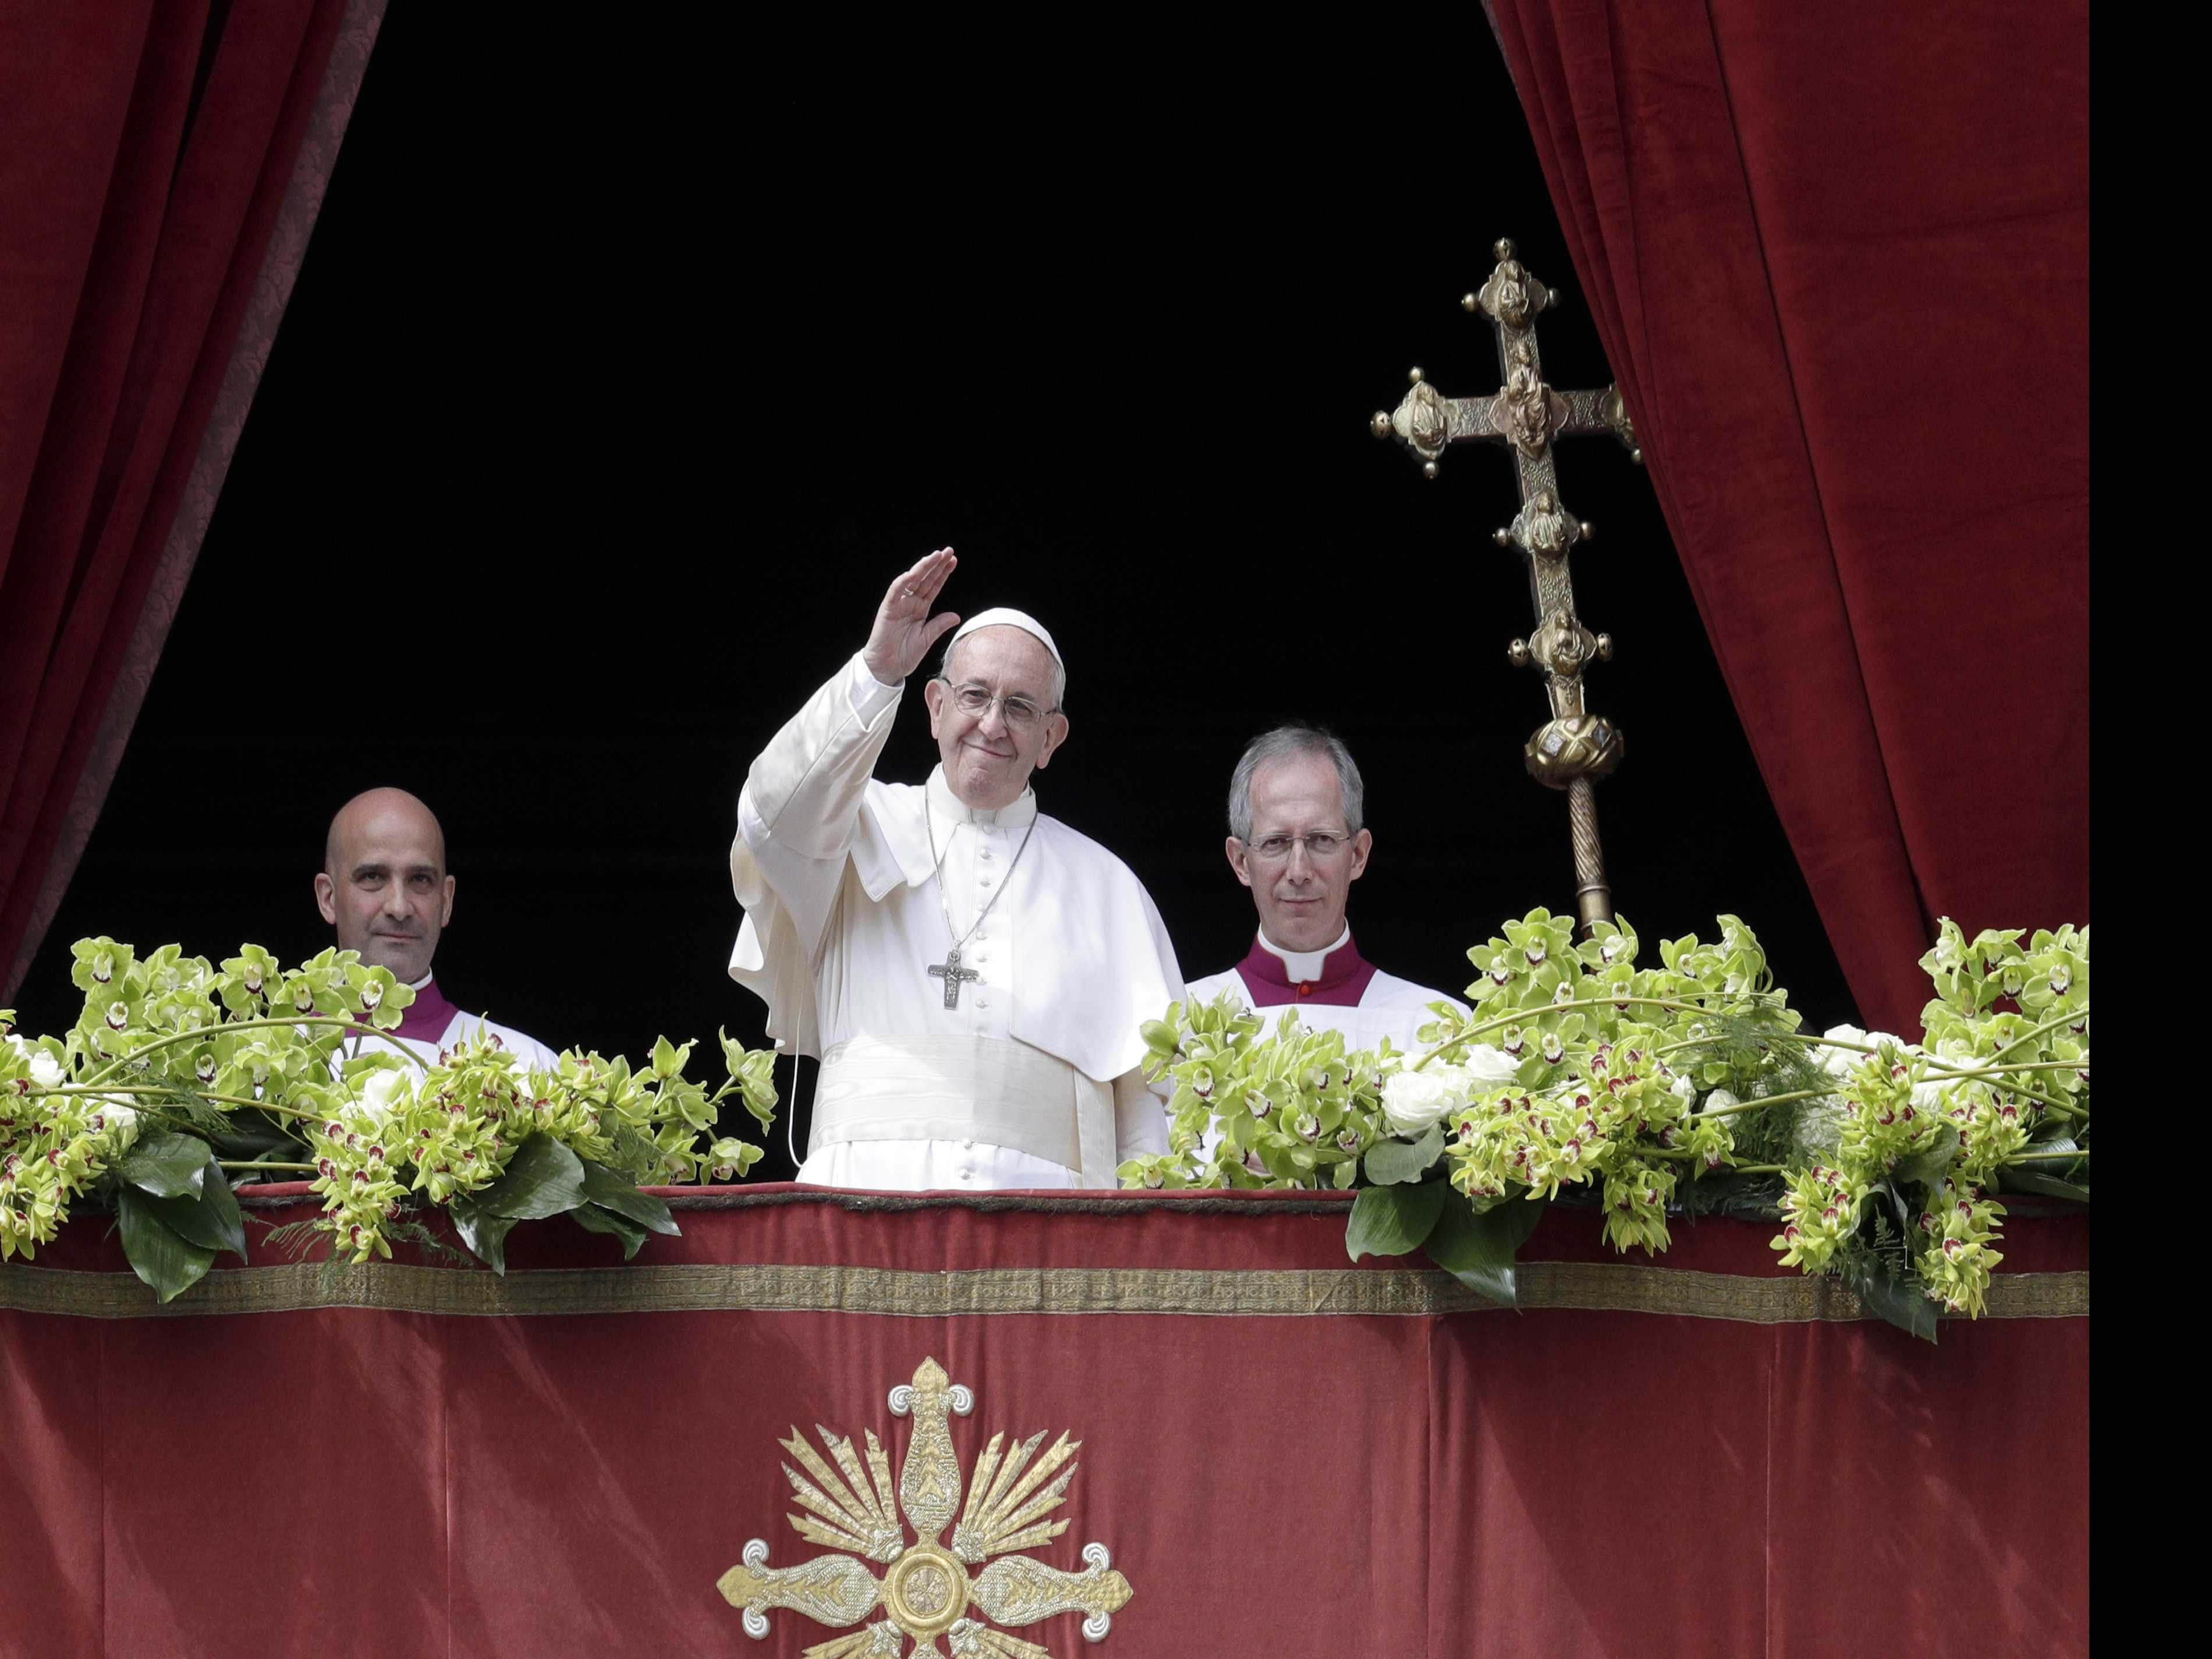 'Hope and Dignity:' Pope Calls for Peace in Easter Message